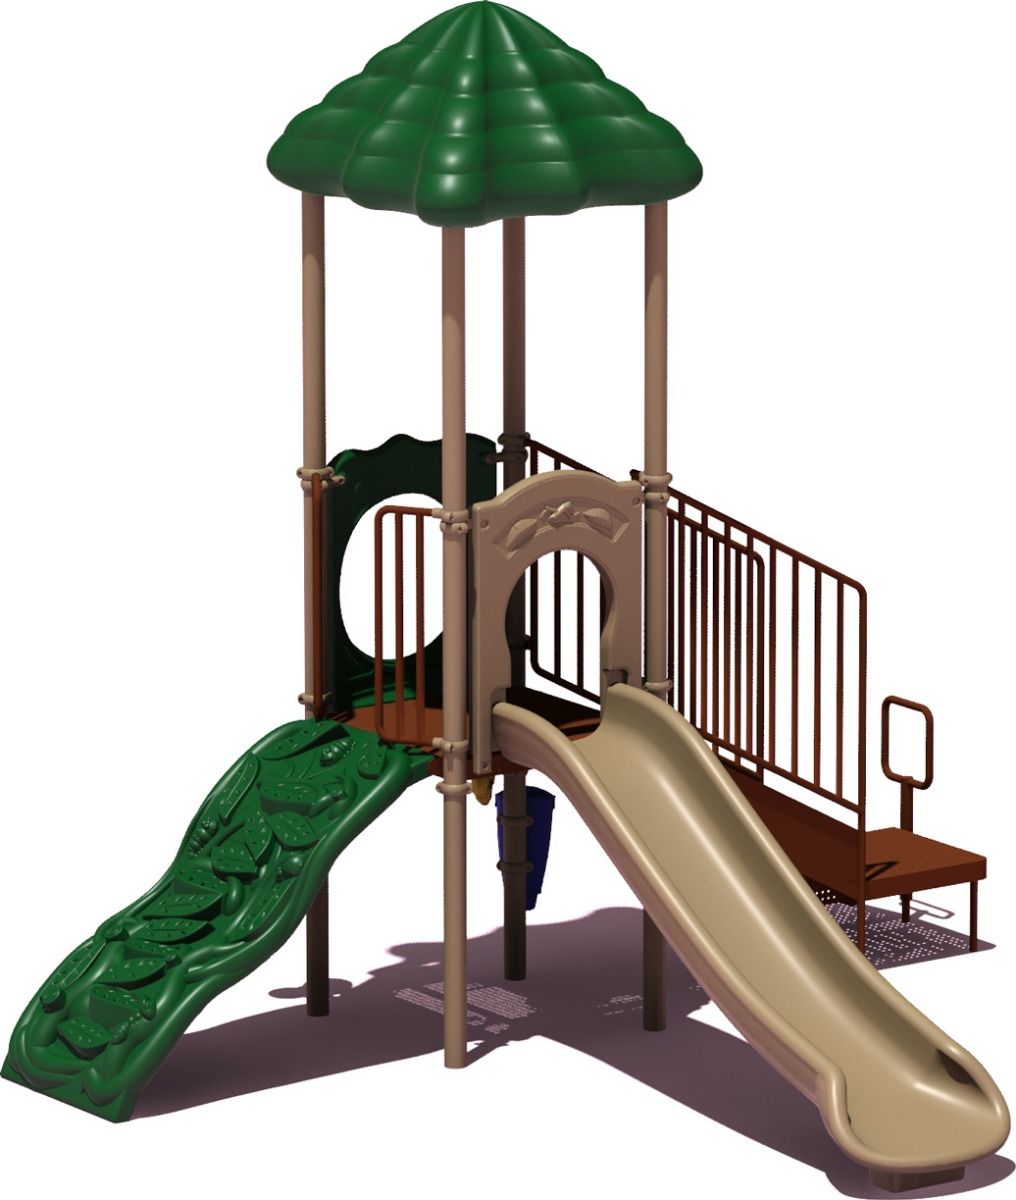 Winning Run - Natural Color Scheme - Front View - Commercial Playground Equipment